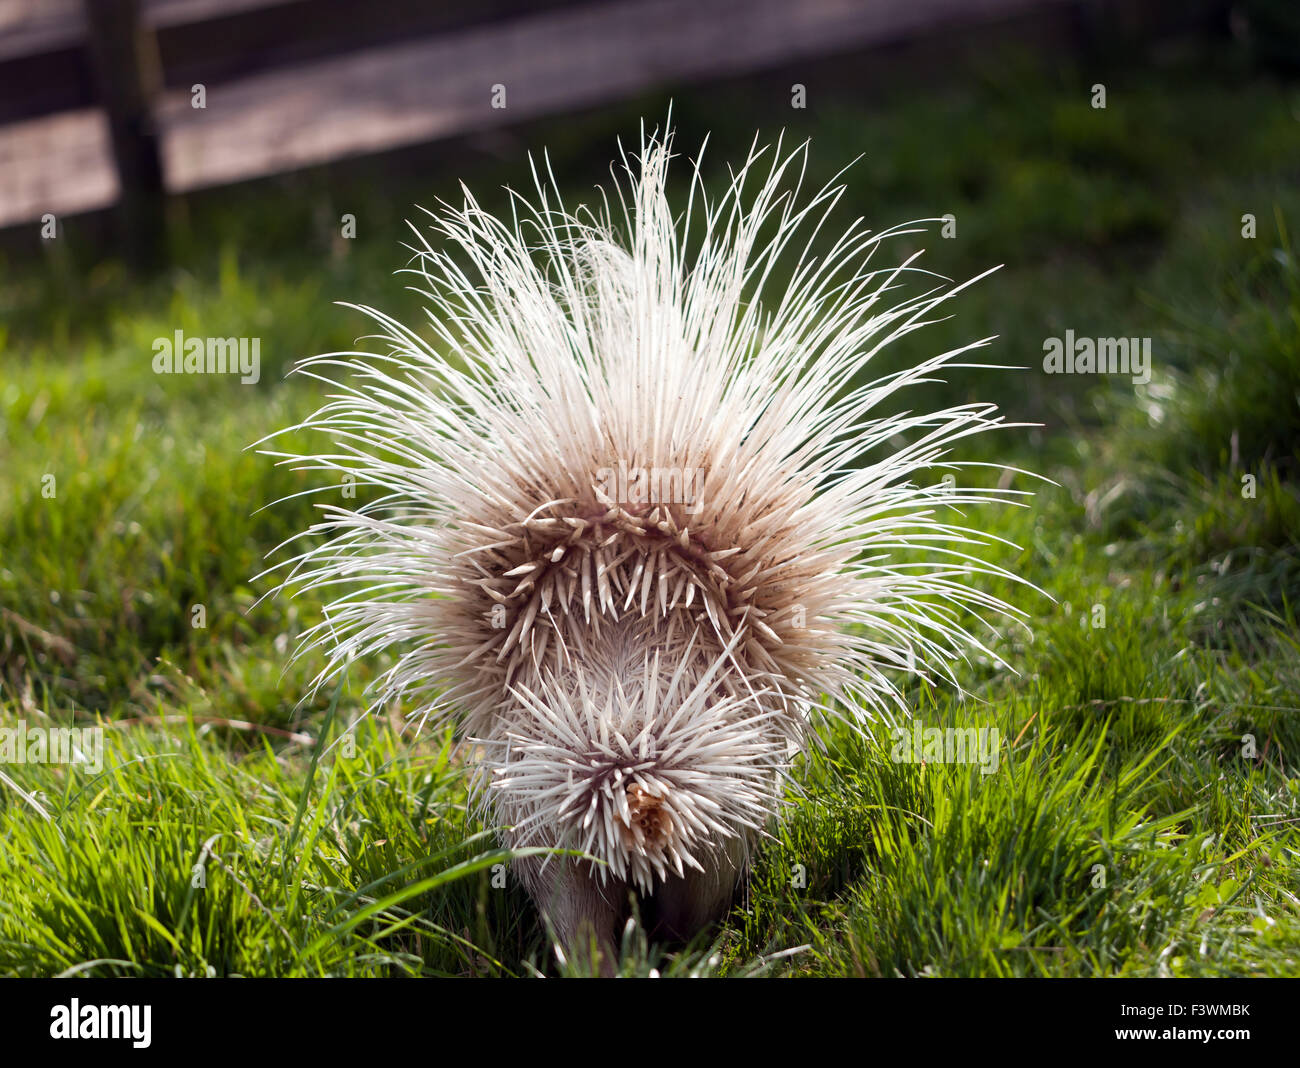 The crested porcupine  (Hystrix cristata), with its quills raised in a defensive posture. Stock Photo